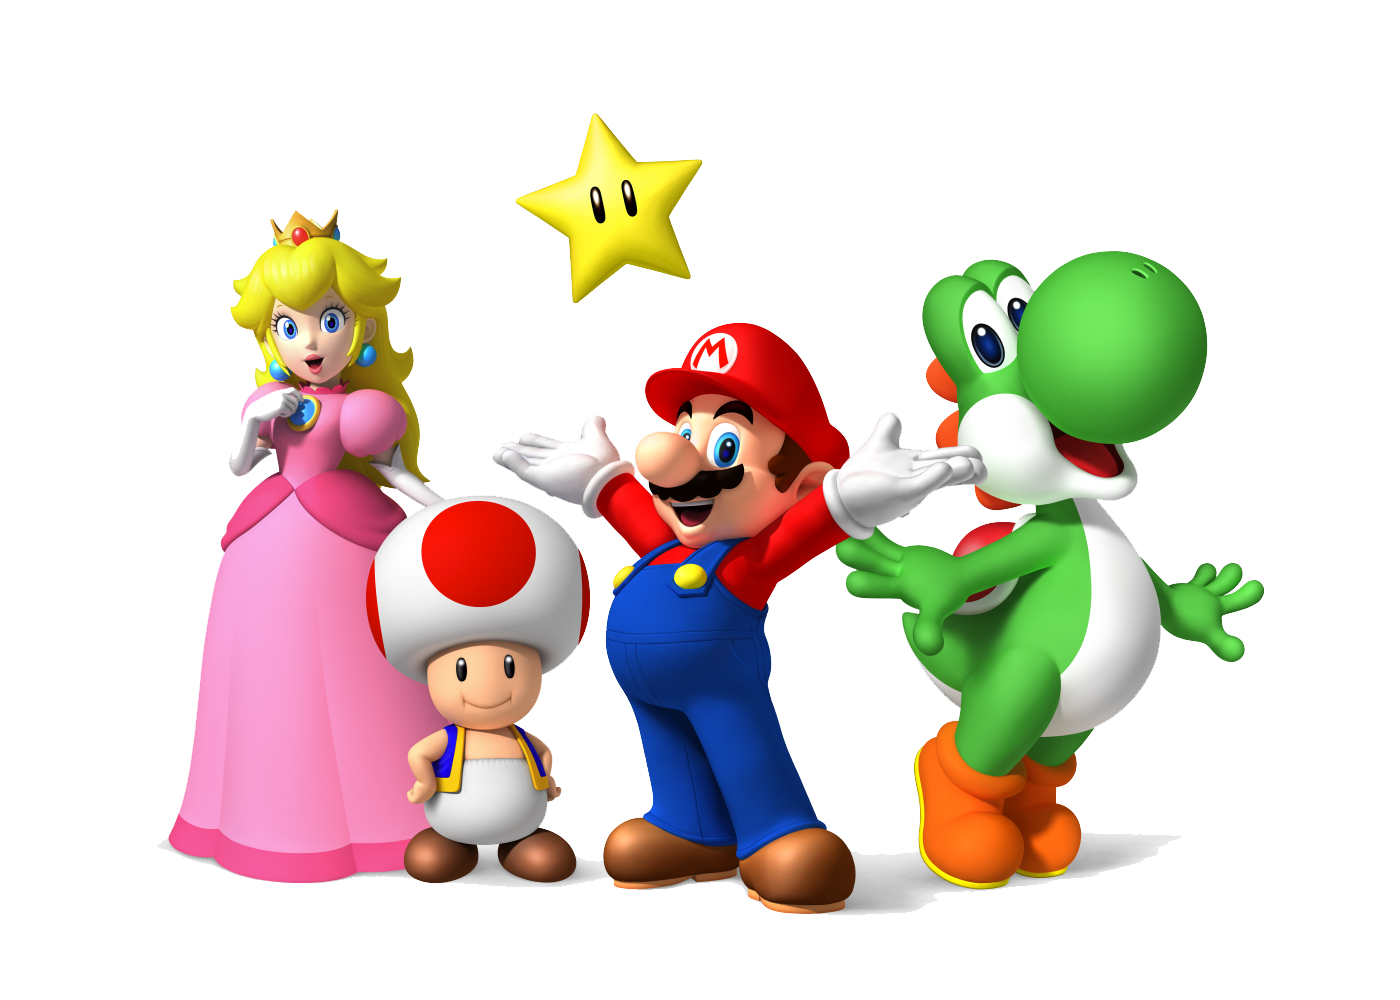 Rush Toy Star Wallpaper Bros Mario Computer PNG Image